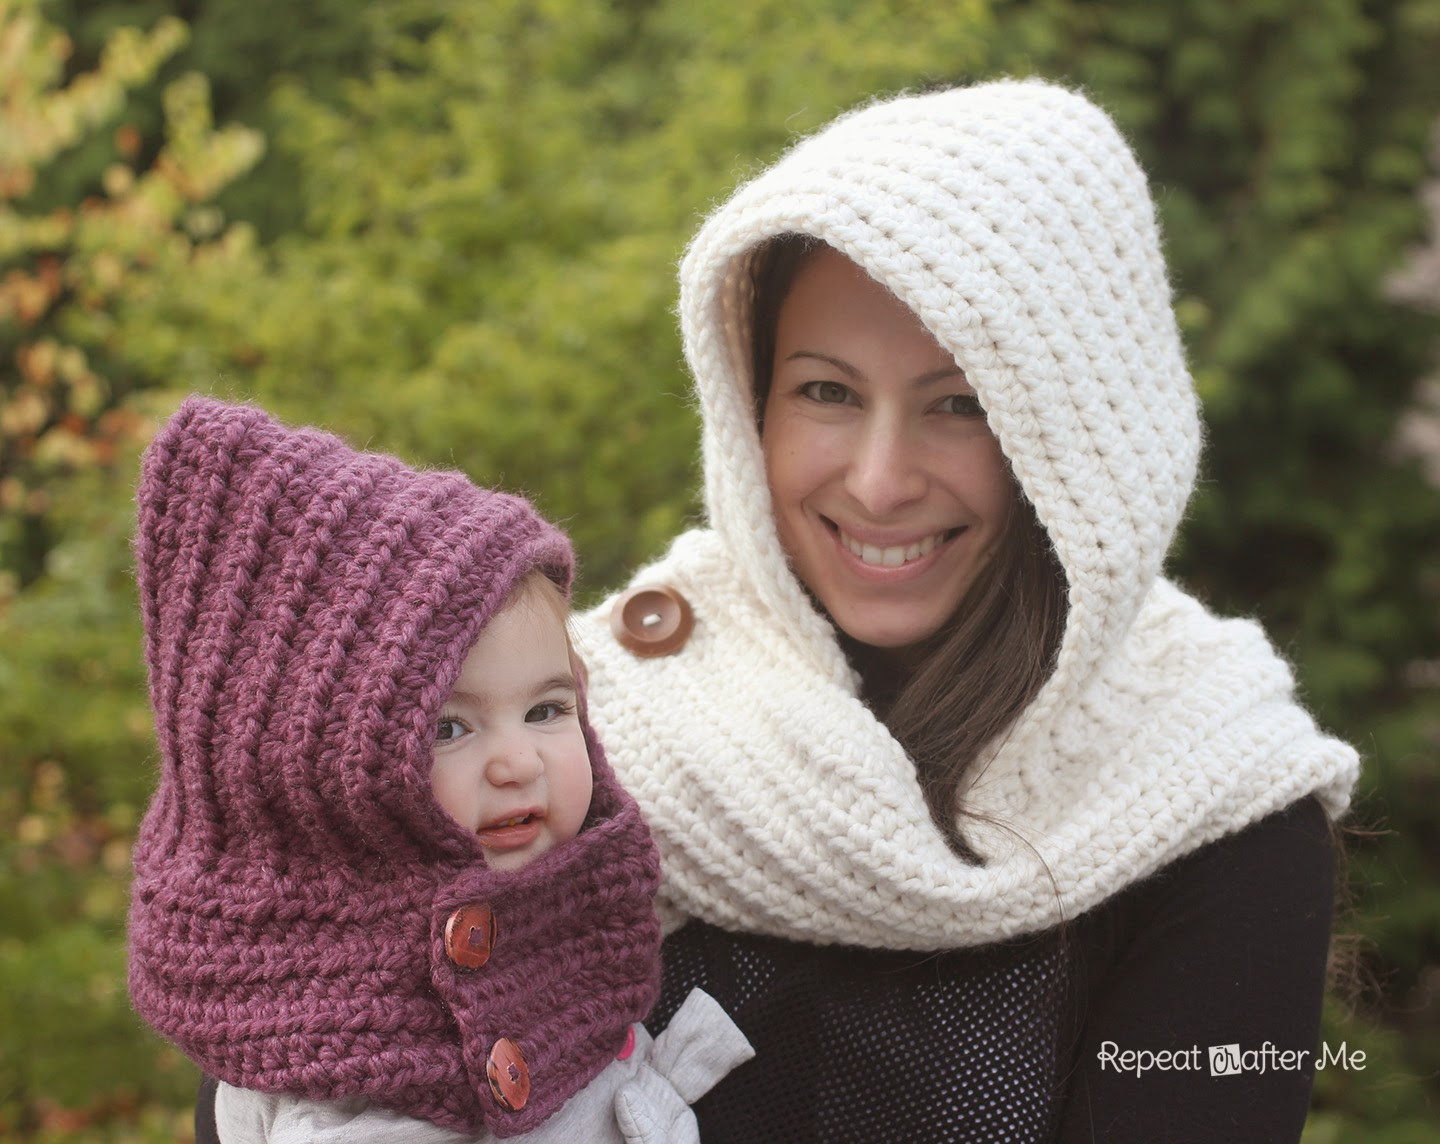 Crochet Cowls Fresh Hooded Crochet Cowl with Lion Brand Thick & Quick Yarn Of Perfect 45 Photos Crochet Cowls